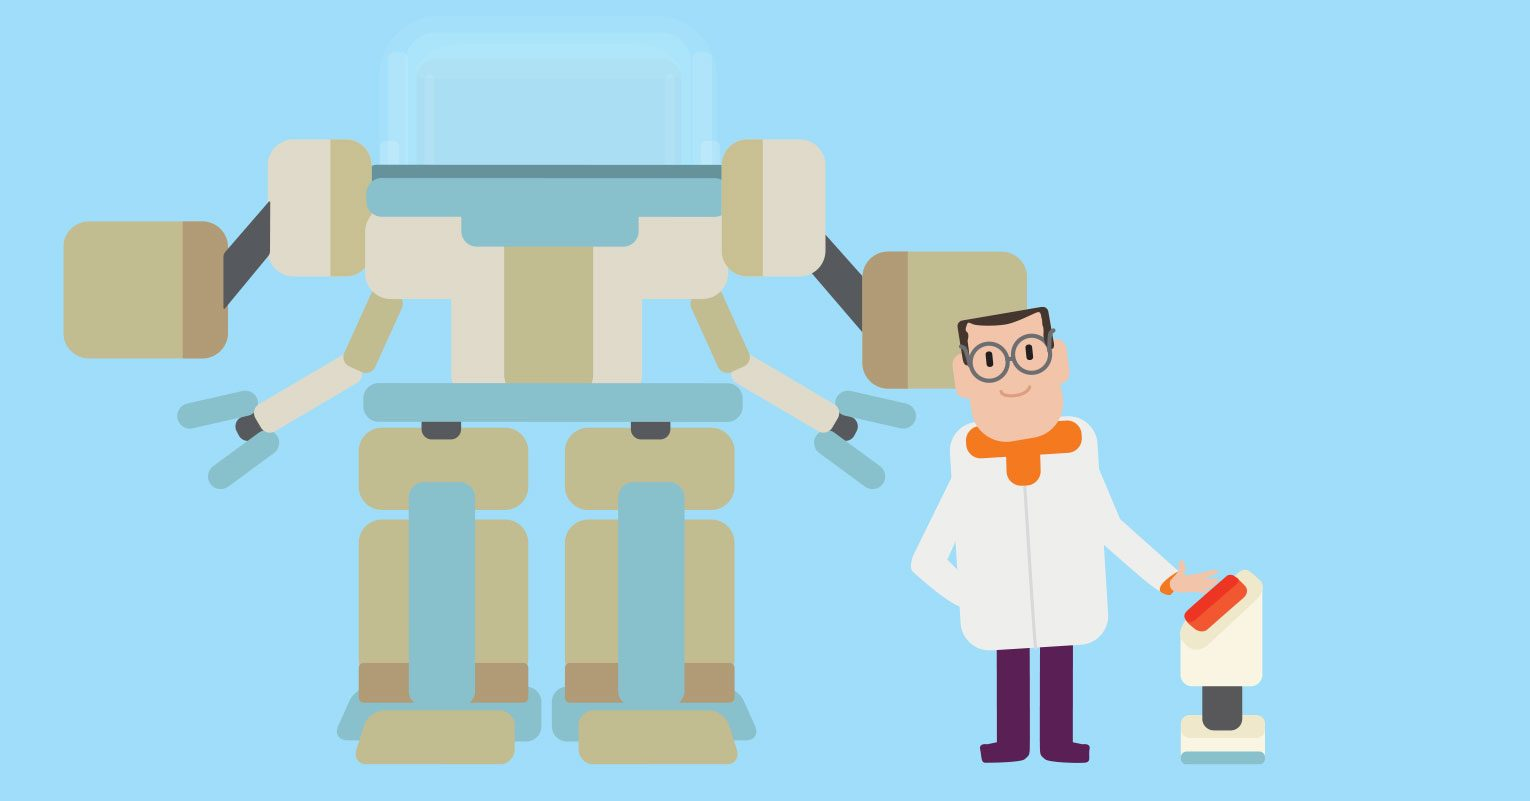 Robot and scientist illustration.